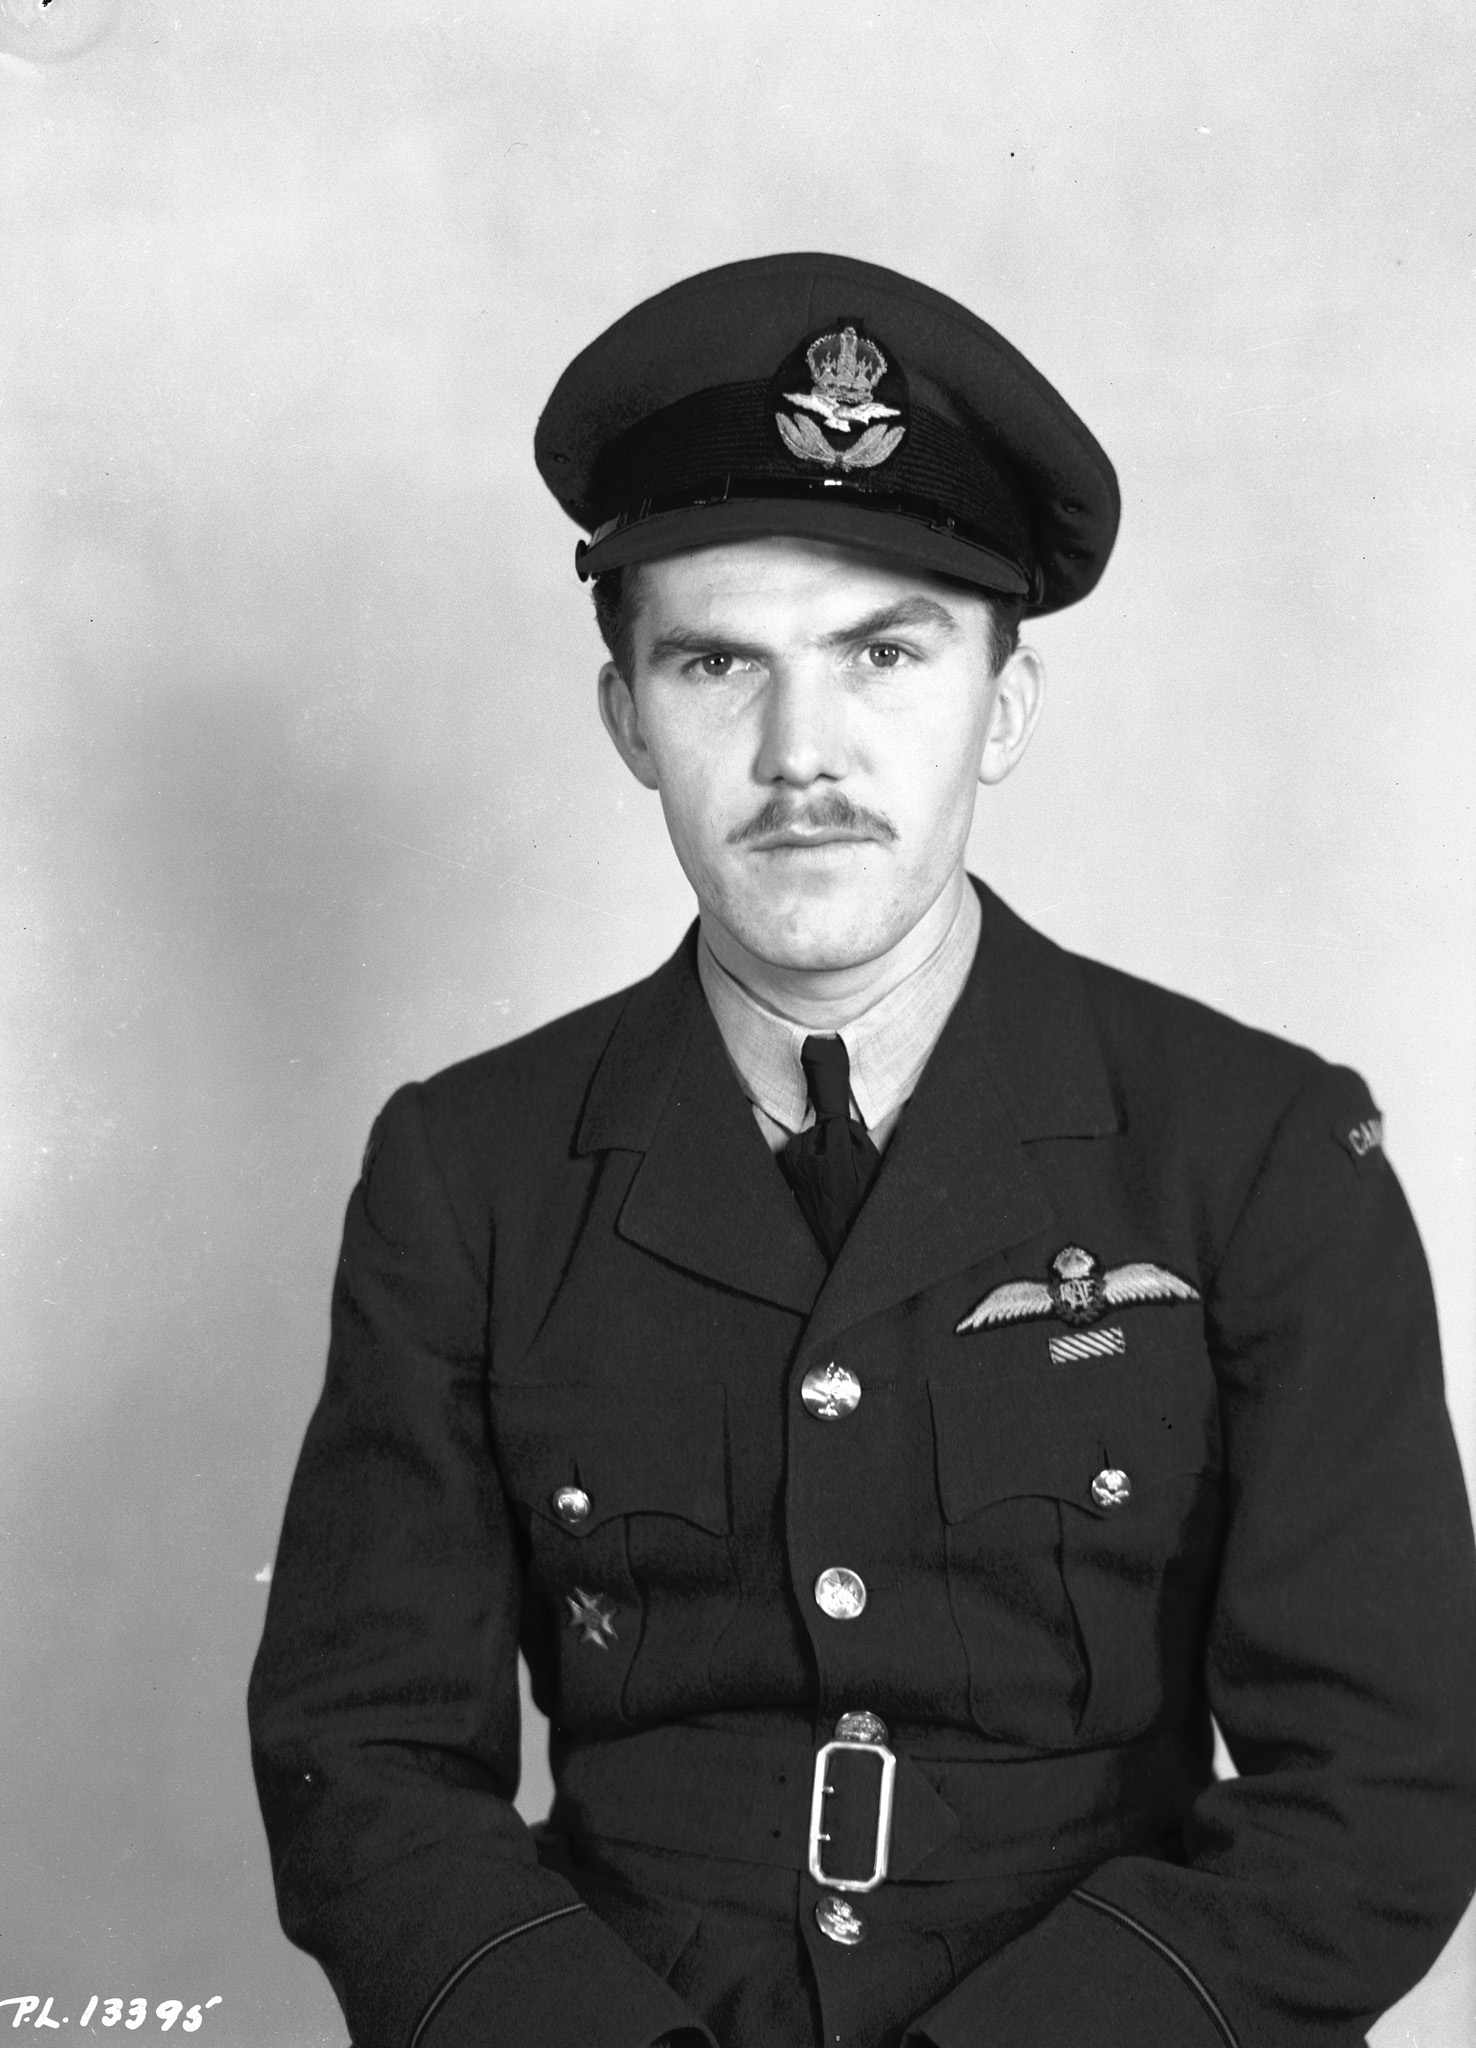 """Photo of James Ballantyne– PL-13395 - 6 March 1943 - Portrait: Pilot Officer J.H. Ballantyne, J/16085, Toronto, Ont. Pilot Officer James Hamilton Ballantyne, D.F.M. of Toronto who won the Distinguished Flying Medal while he was a flight sergeant serving with the Royal Air Force in the defense of Malta. Son of Mr. and Mrs. J.H.H. Ballantyne, 43 Hendrich avenue, Pilot Officer Ballantyne has destroyed at least five enemy aircraft and damaged others and his citation notes that he """"is a most courageous and brave fighter pilot, who has played a worthy part in the defense of Malta."""""""